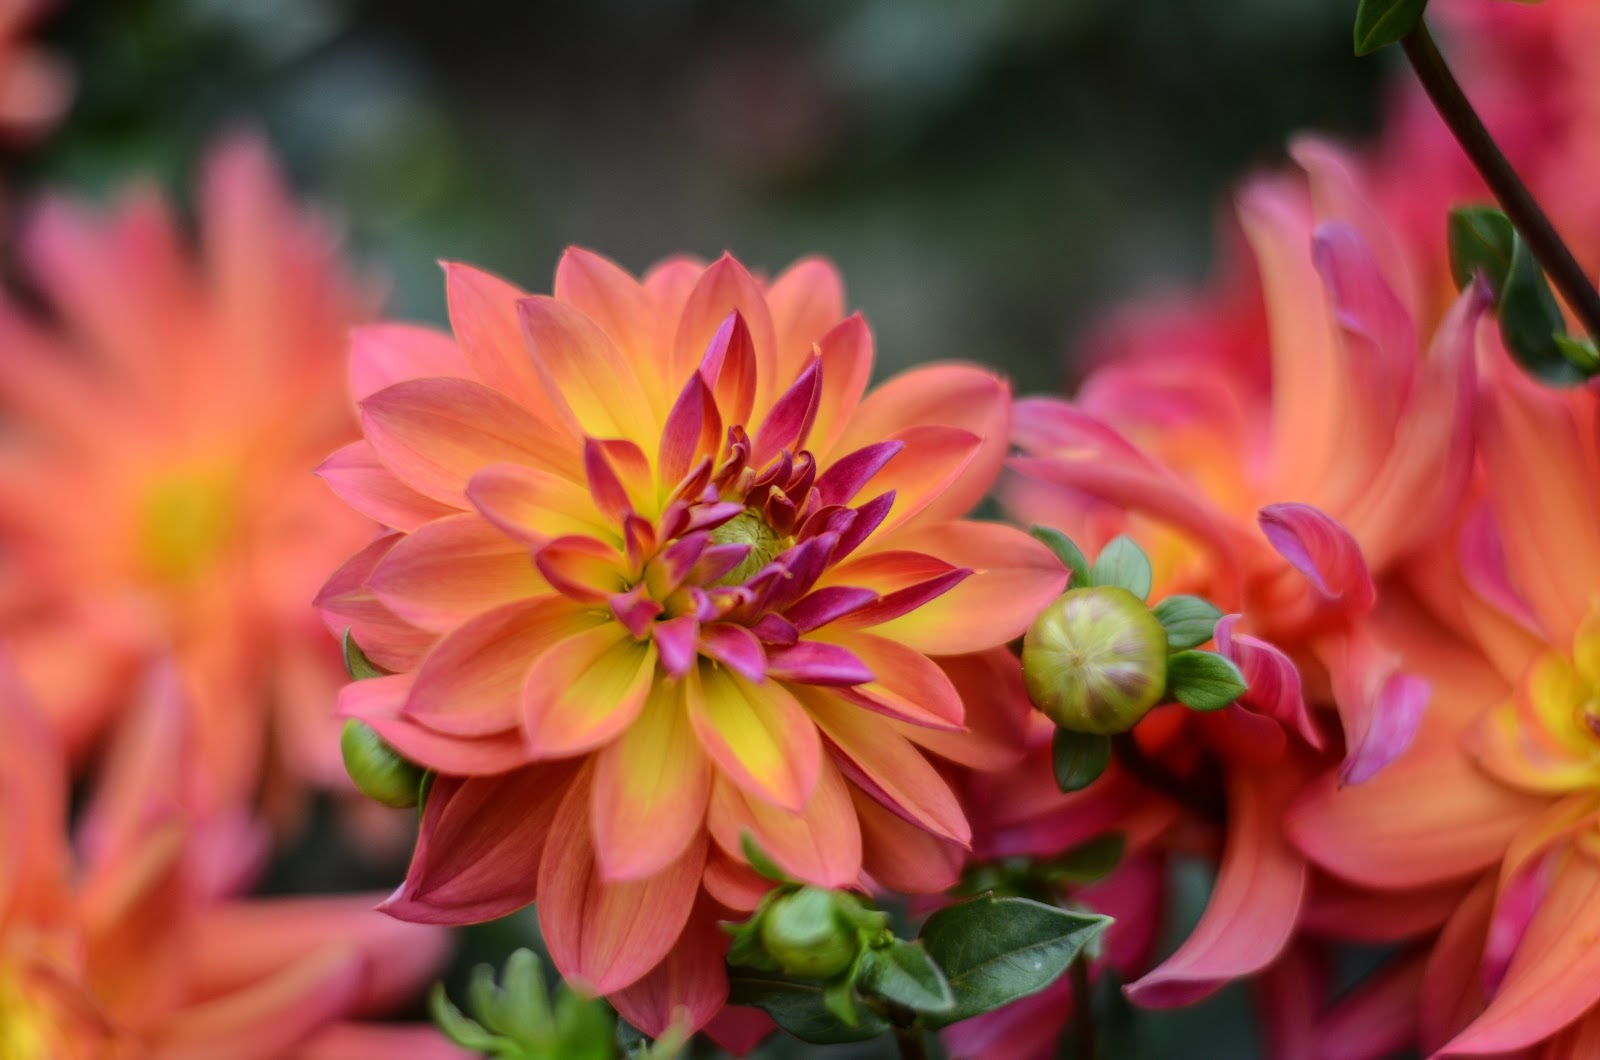 blossom-dahlia, flower wallpaper images